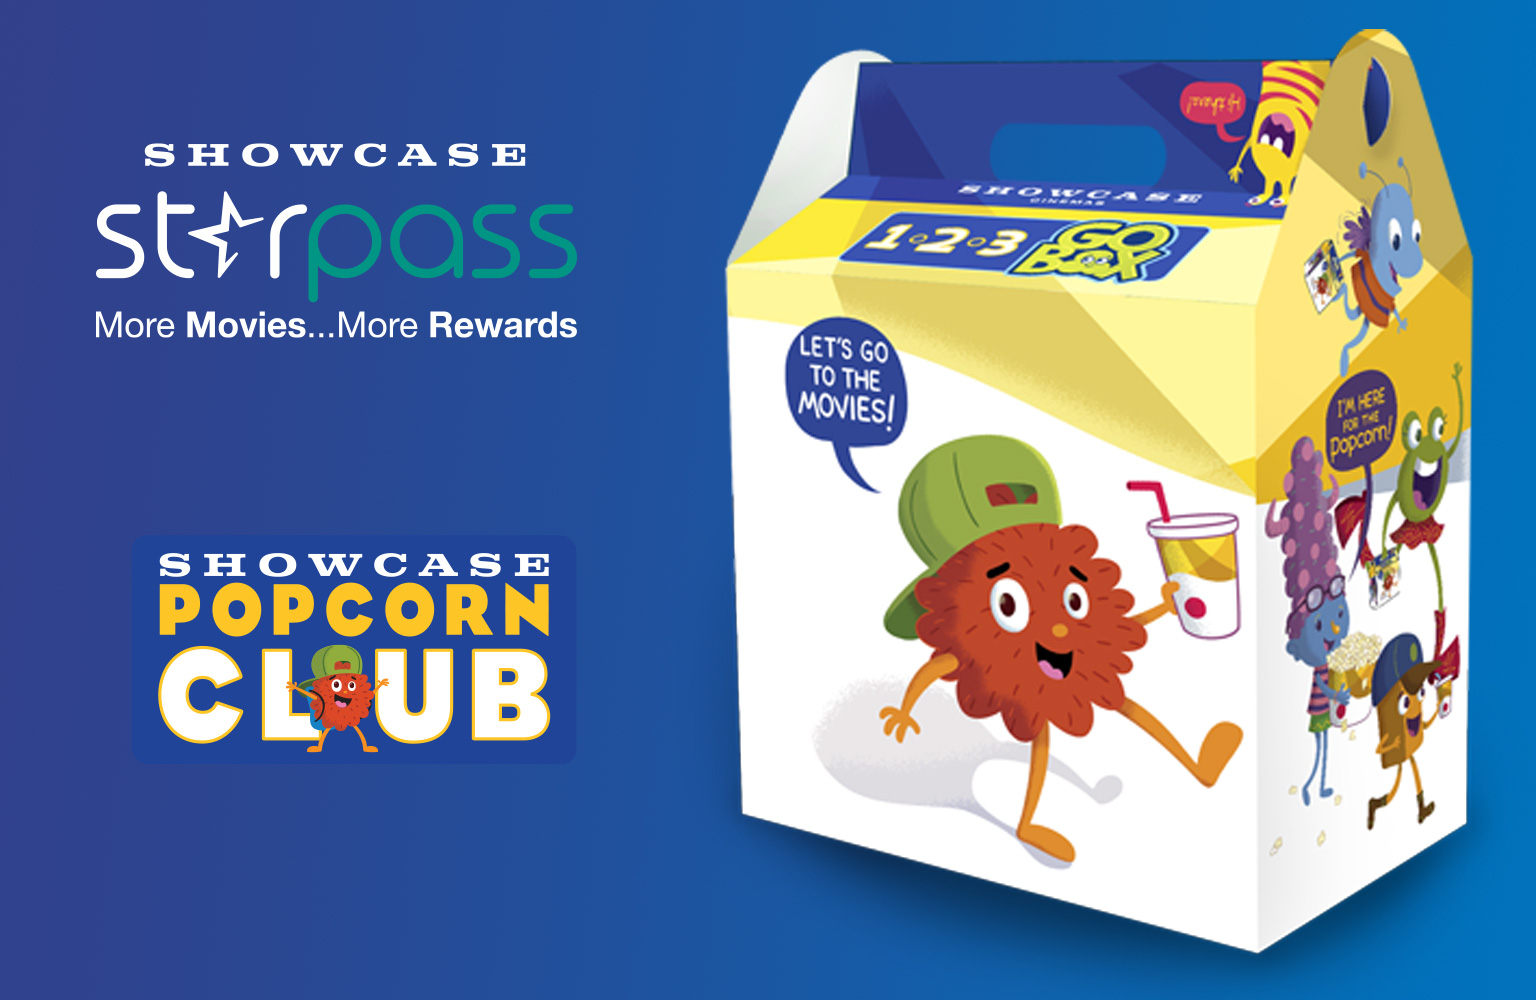 Popcorn Club & Starpass Members get a 123 Go Box for only $5 with your PJ Masks ticket.